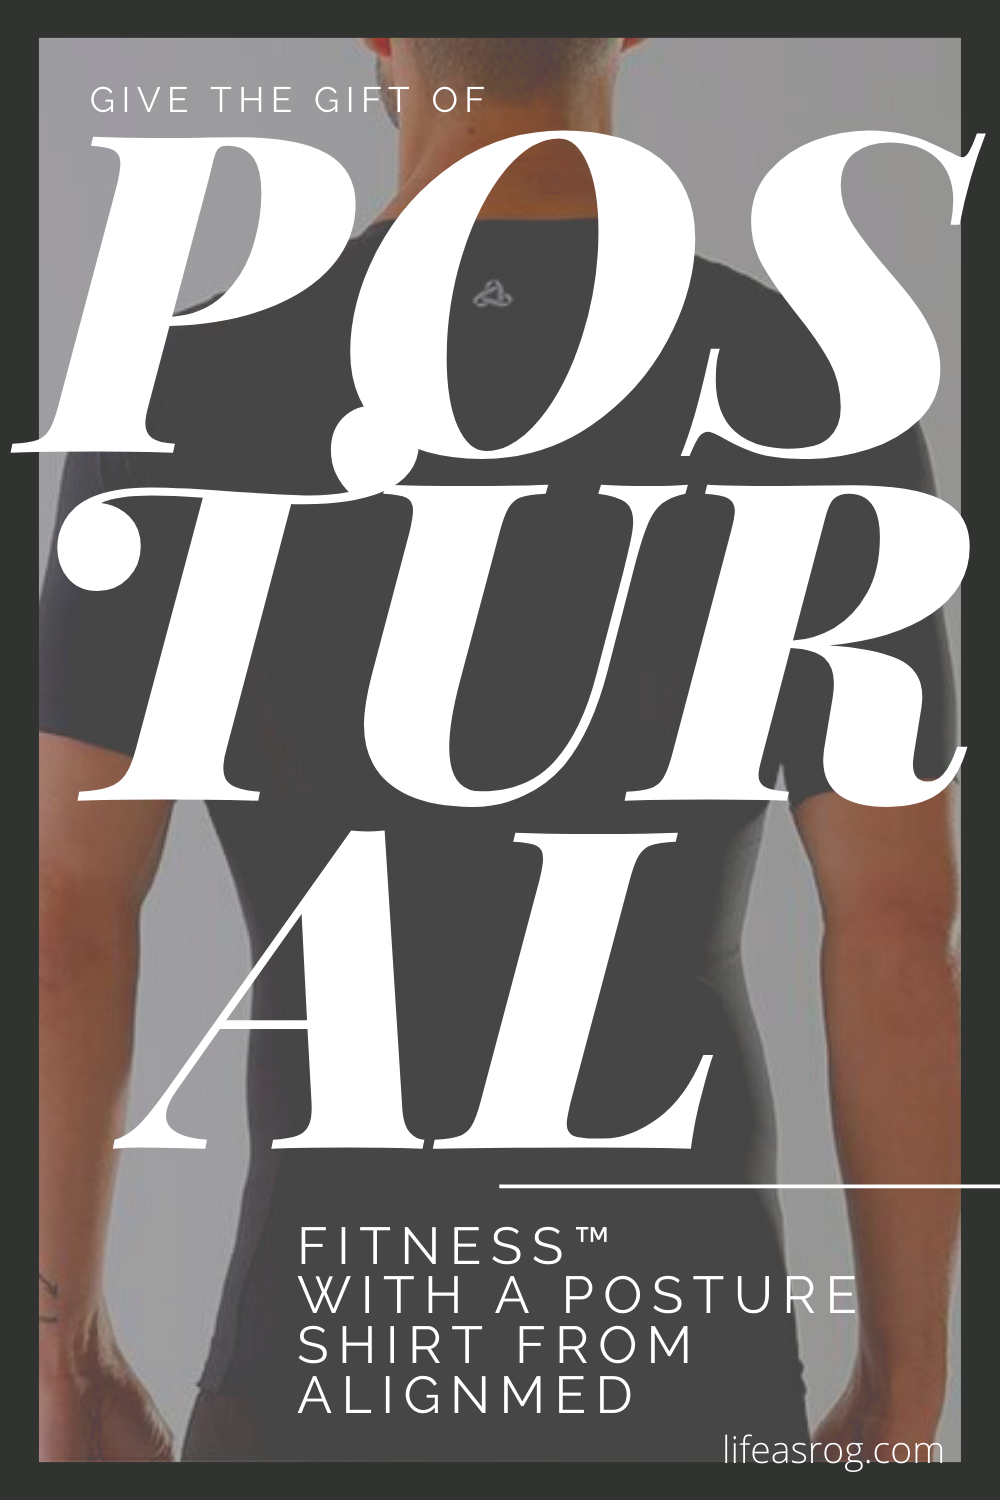 Give the Gift of Postural Fitness™ with a Posture Shirt from Alignmed